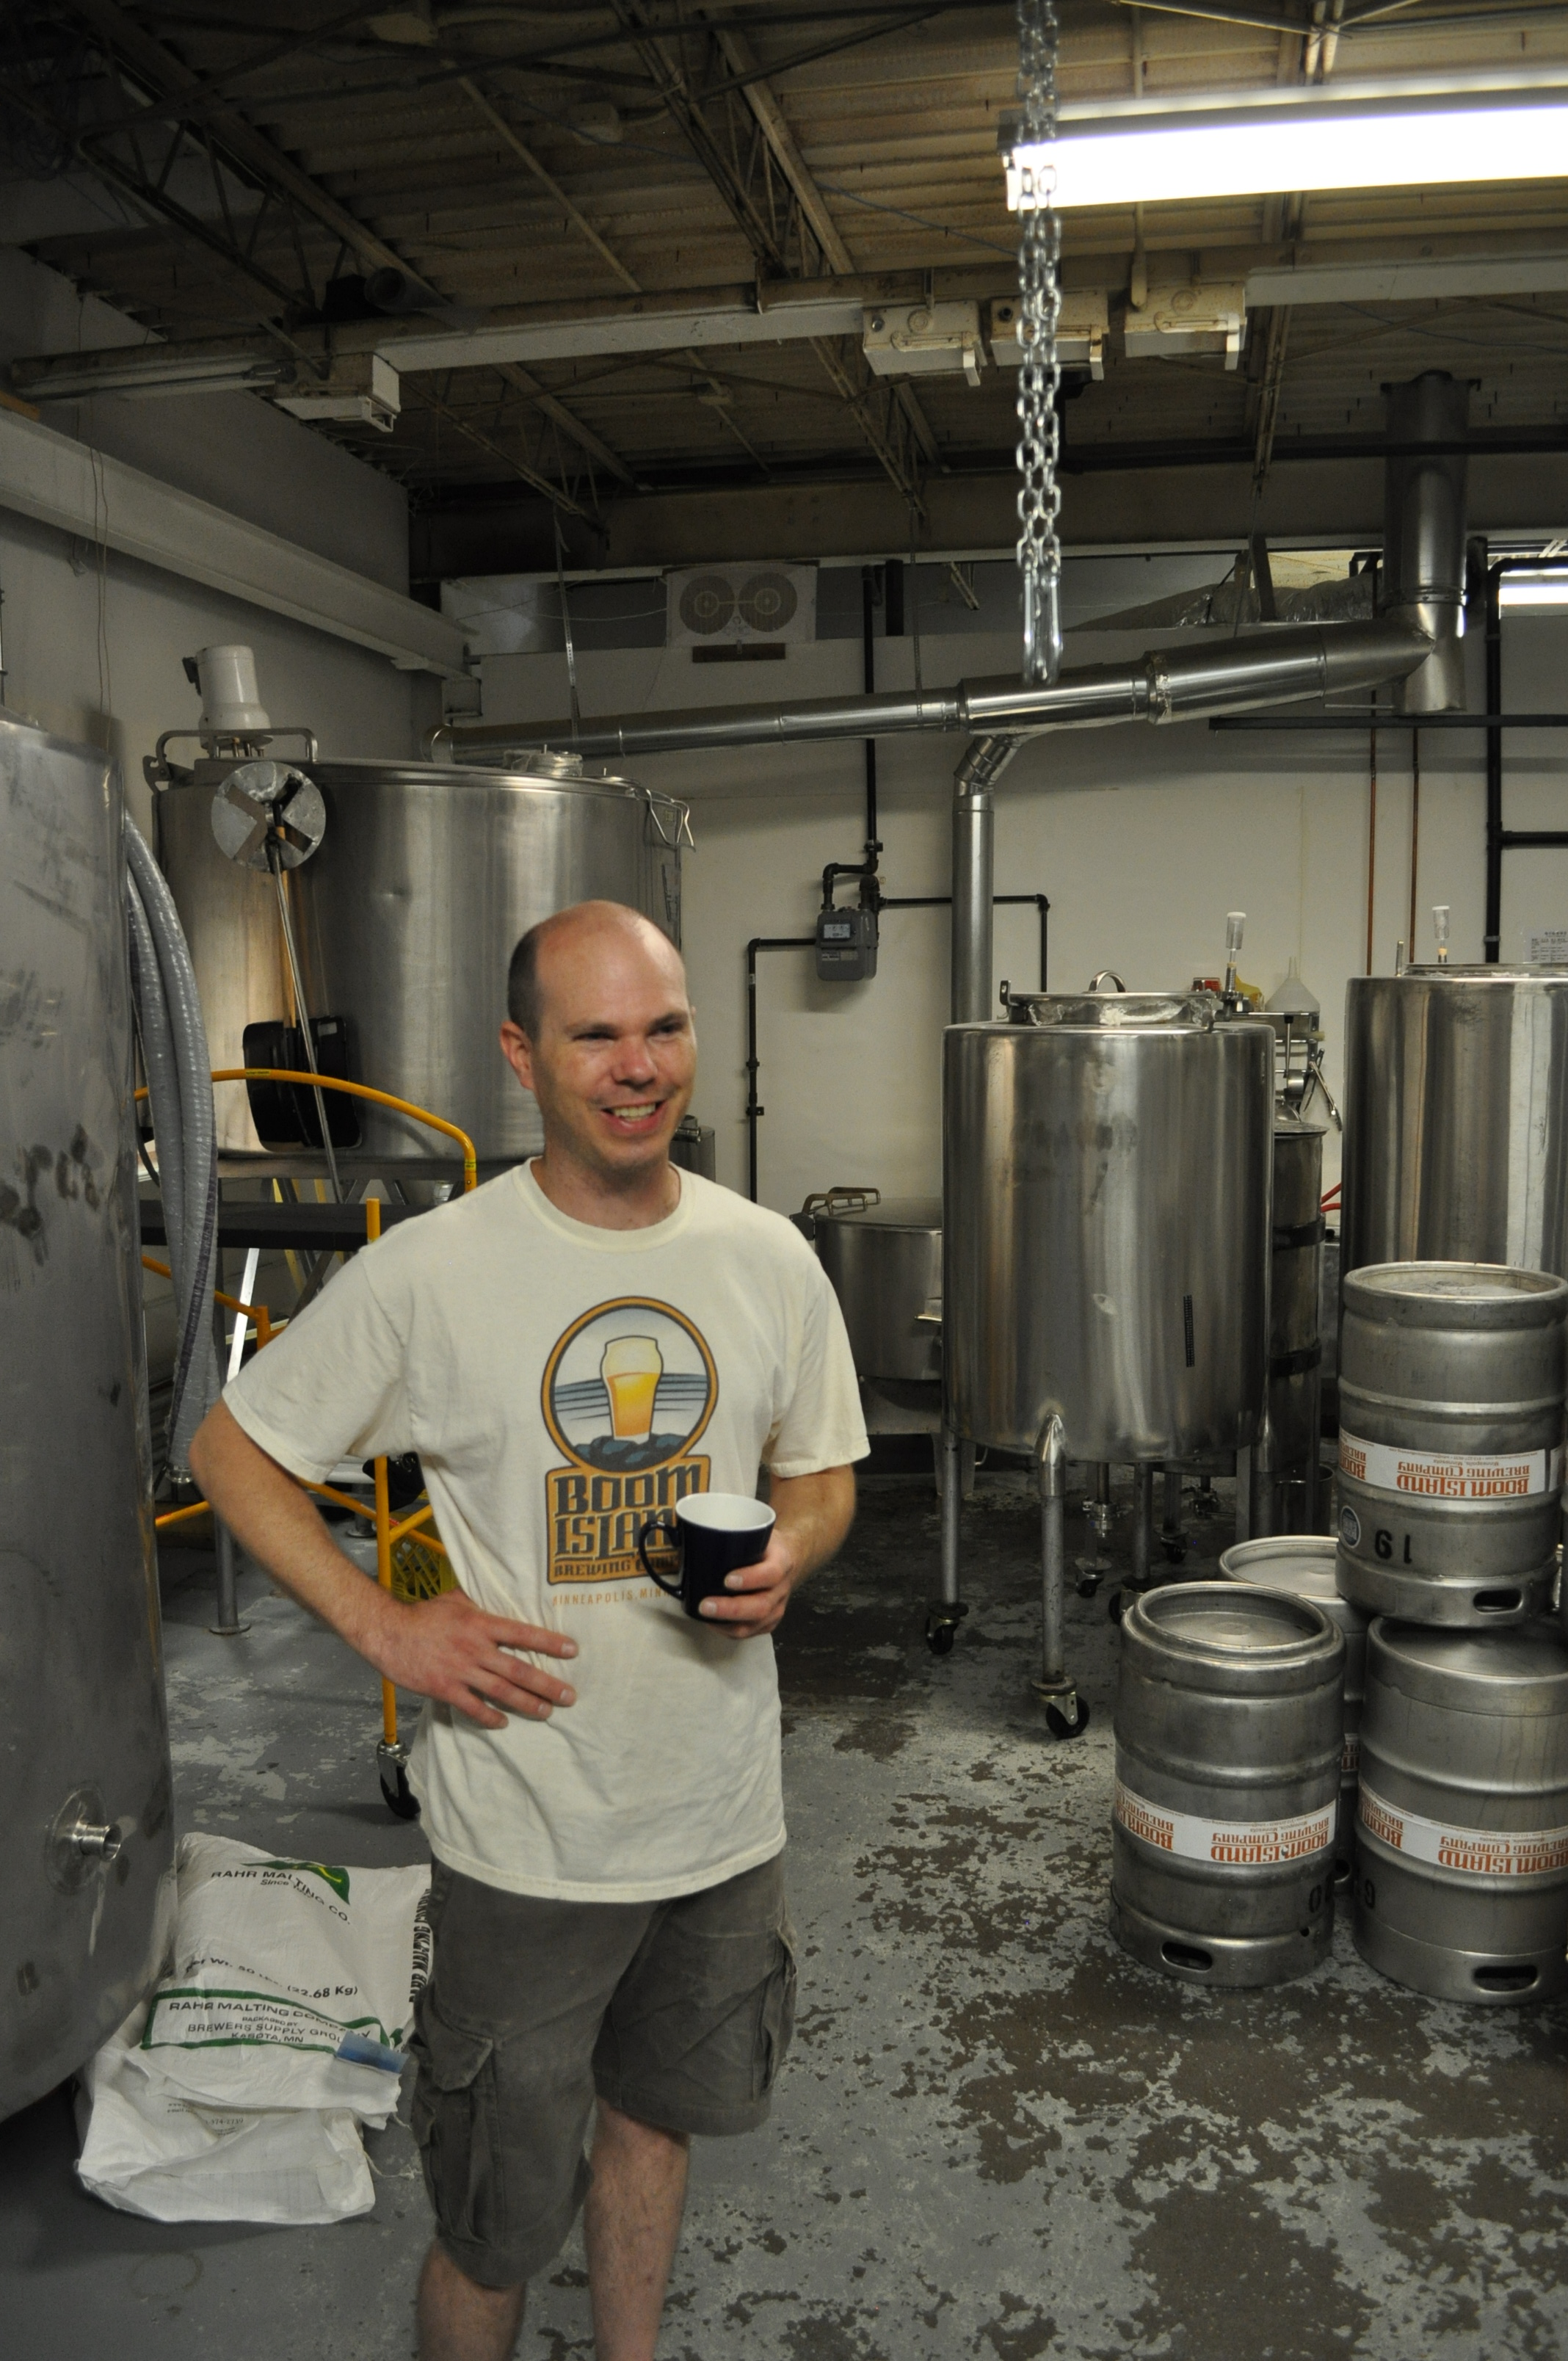 Kevin Welch of Boom Island Brewing // Photo by Joe Alton